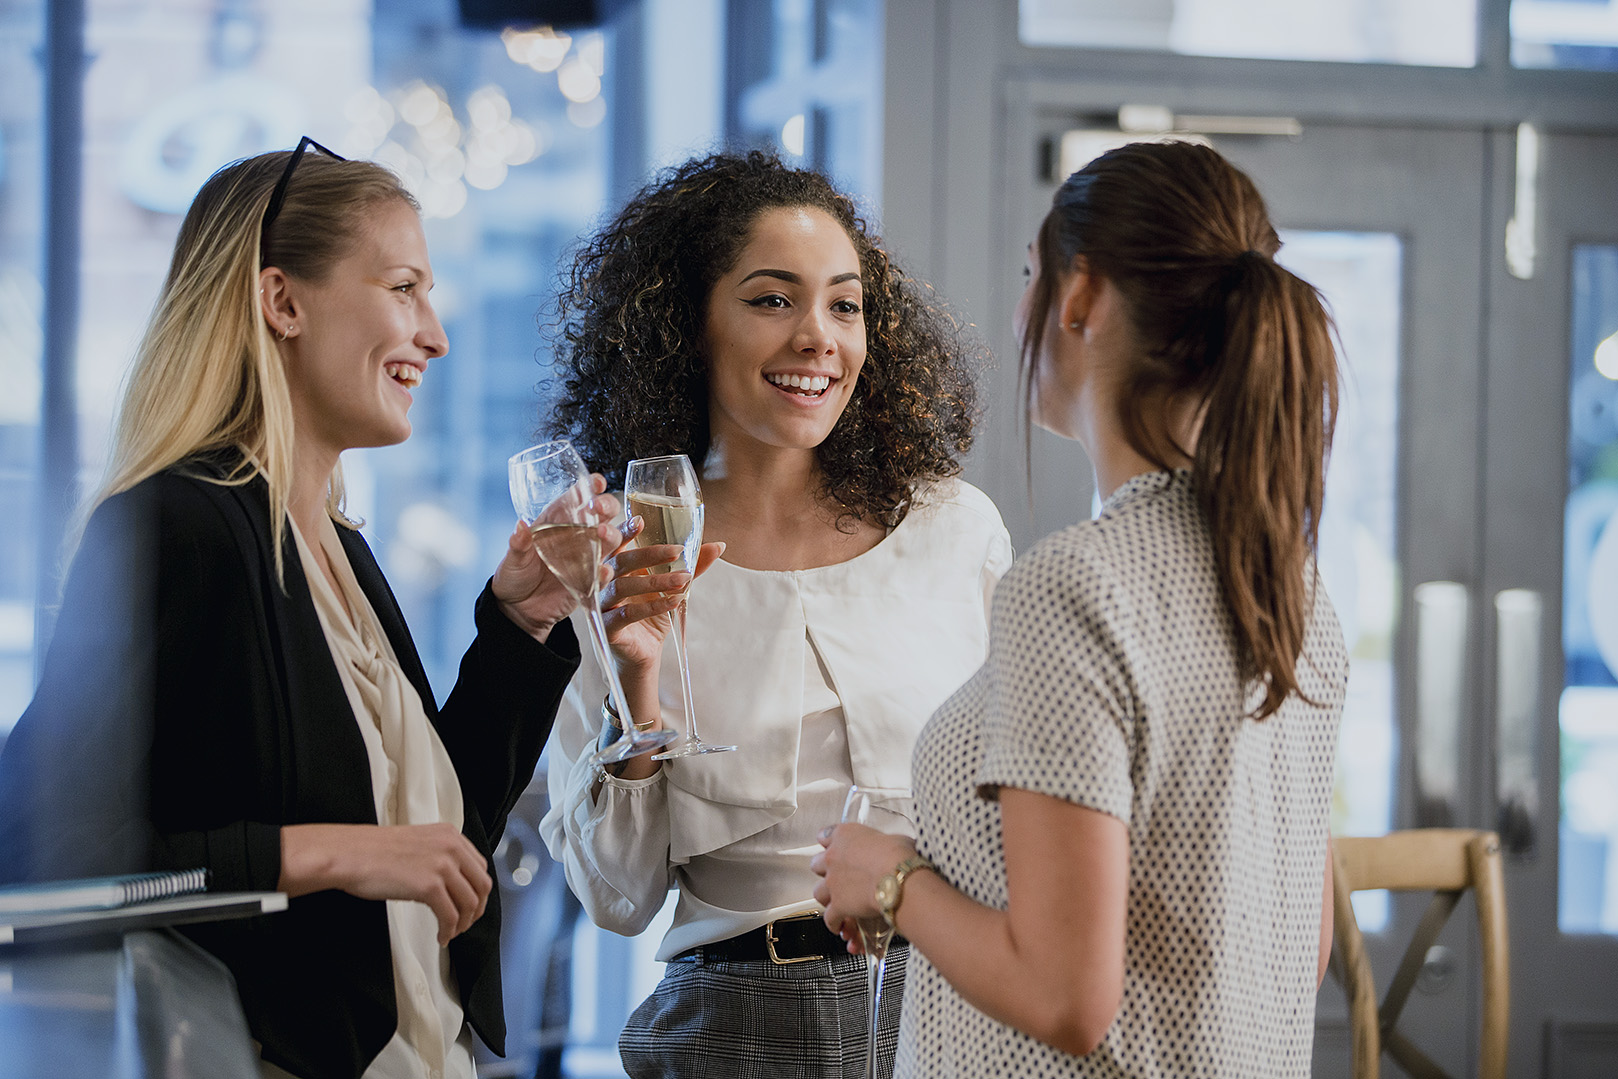 Women's networking: making it work for you - Brought to you by NatWest